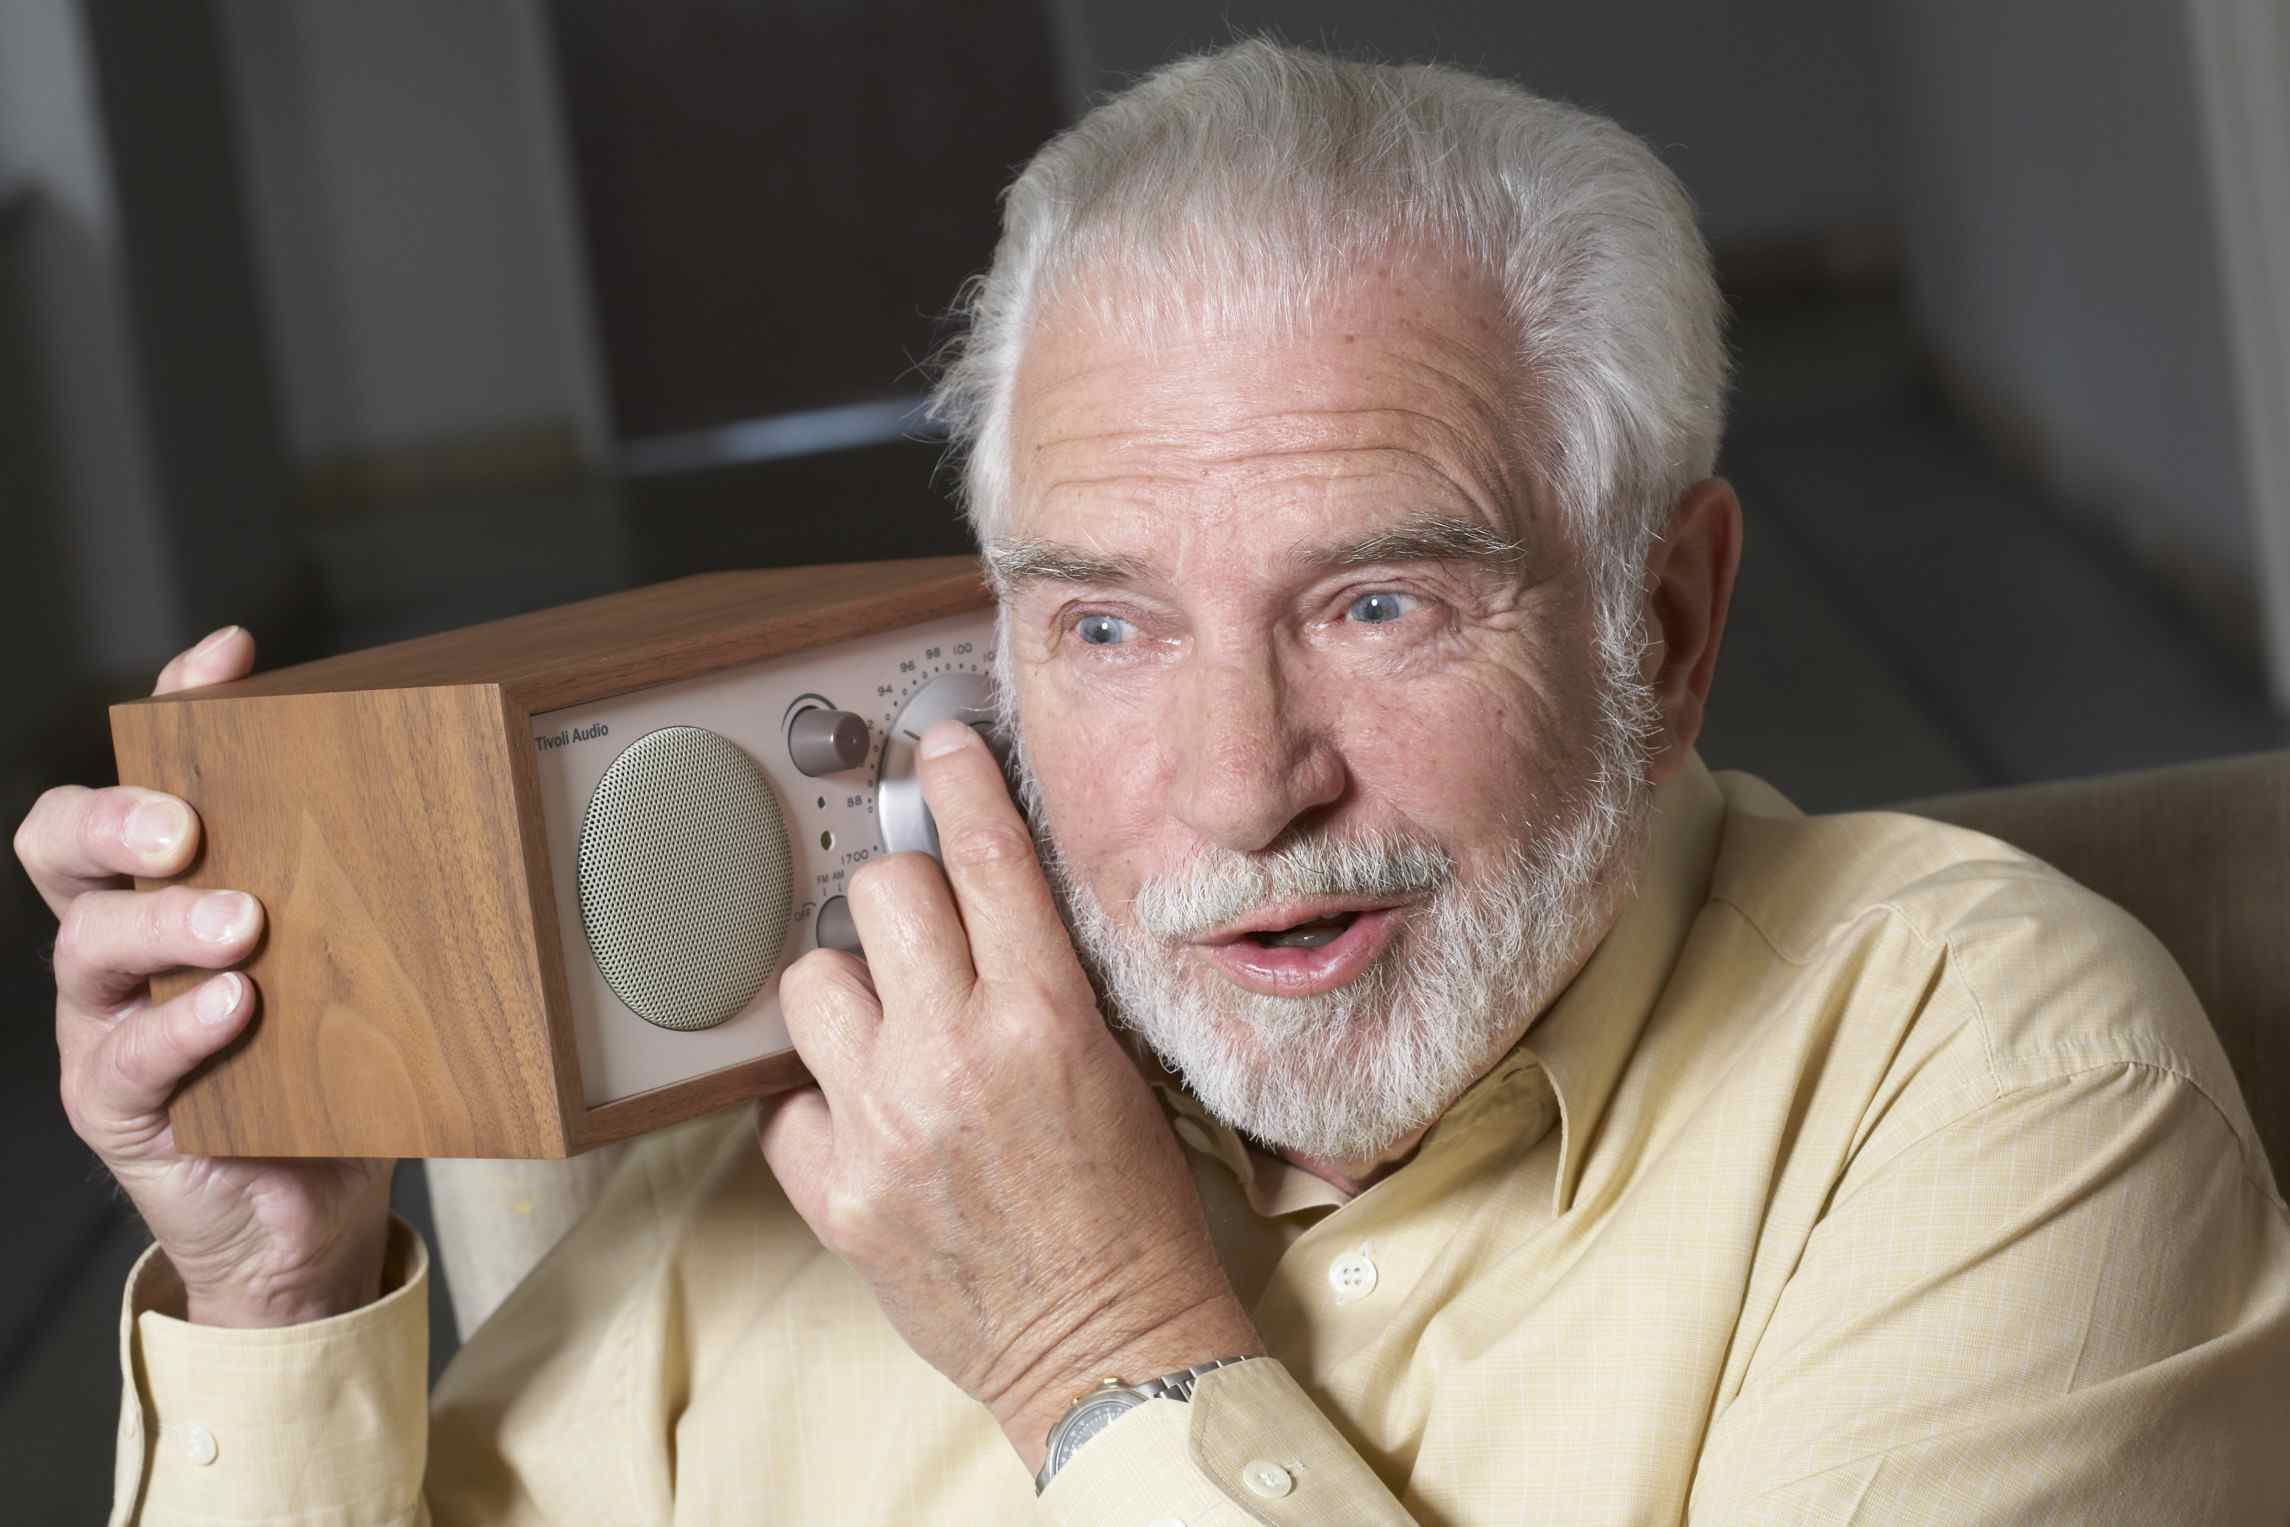 man holding radio dial up to his ear